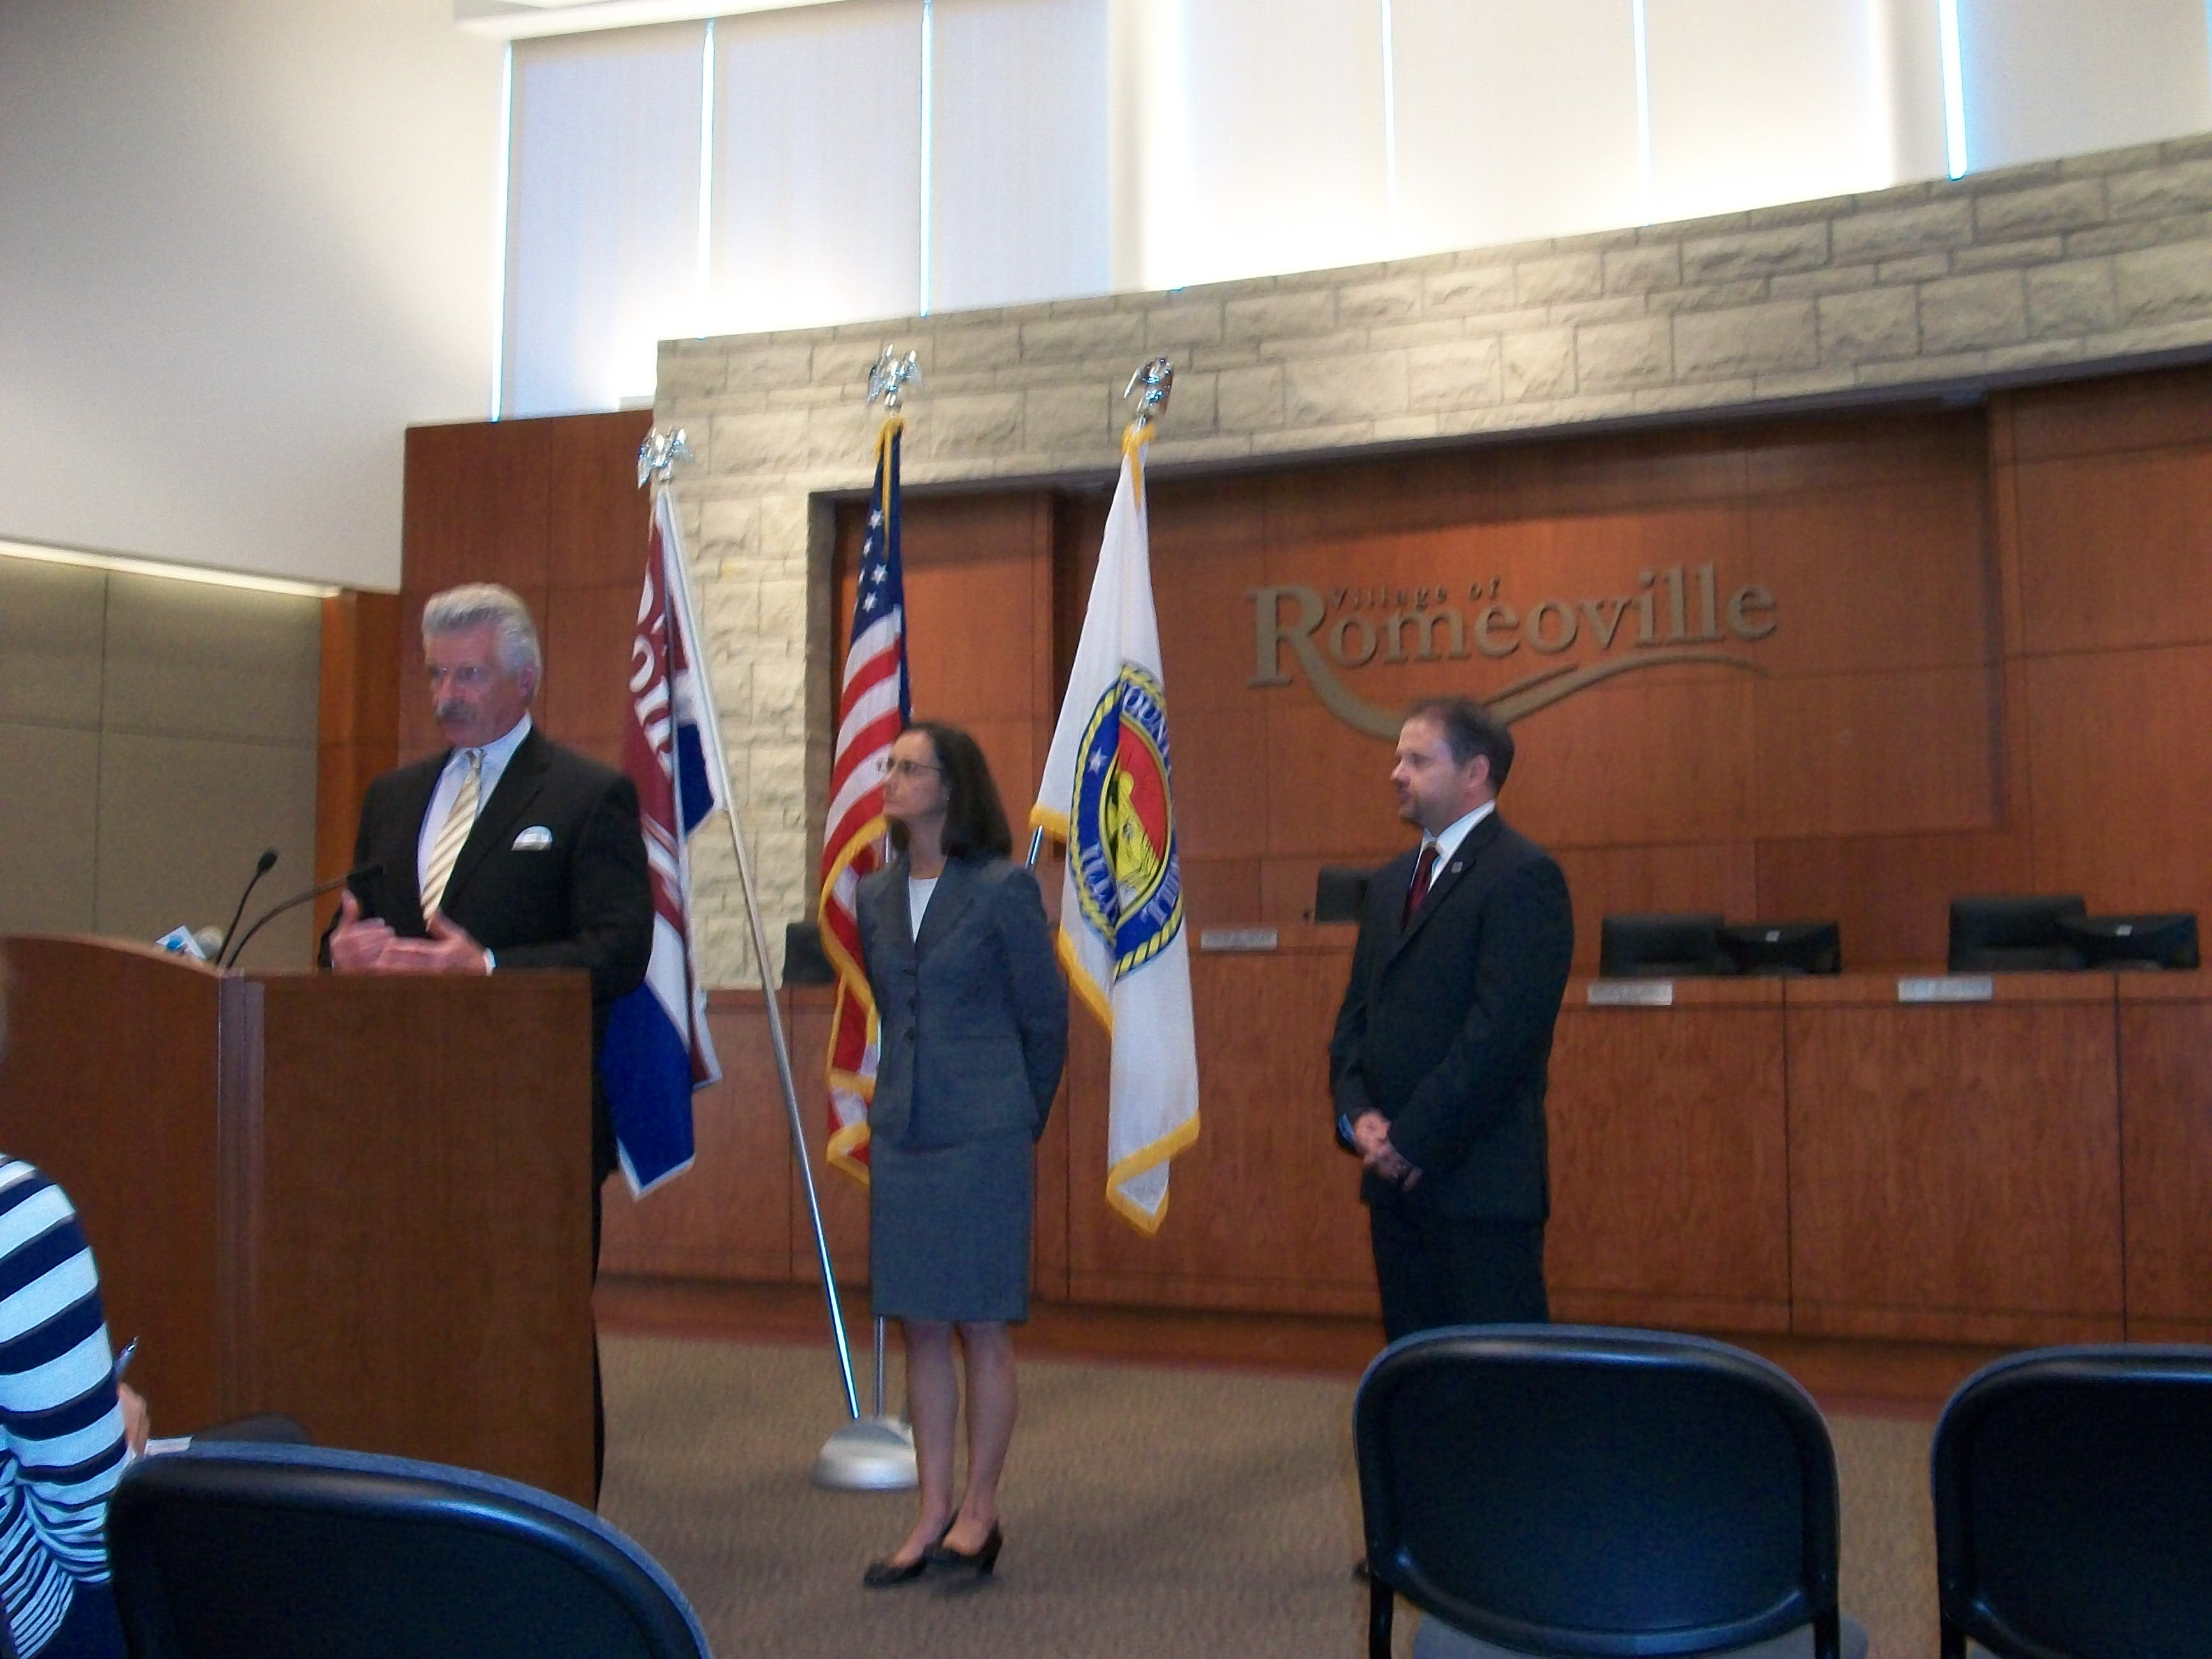 State, County File Suit over 6,000-Gallon Romeoville Oil